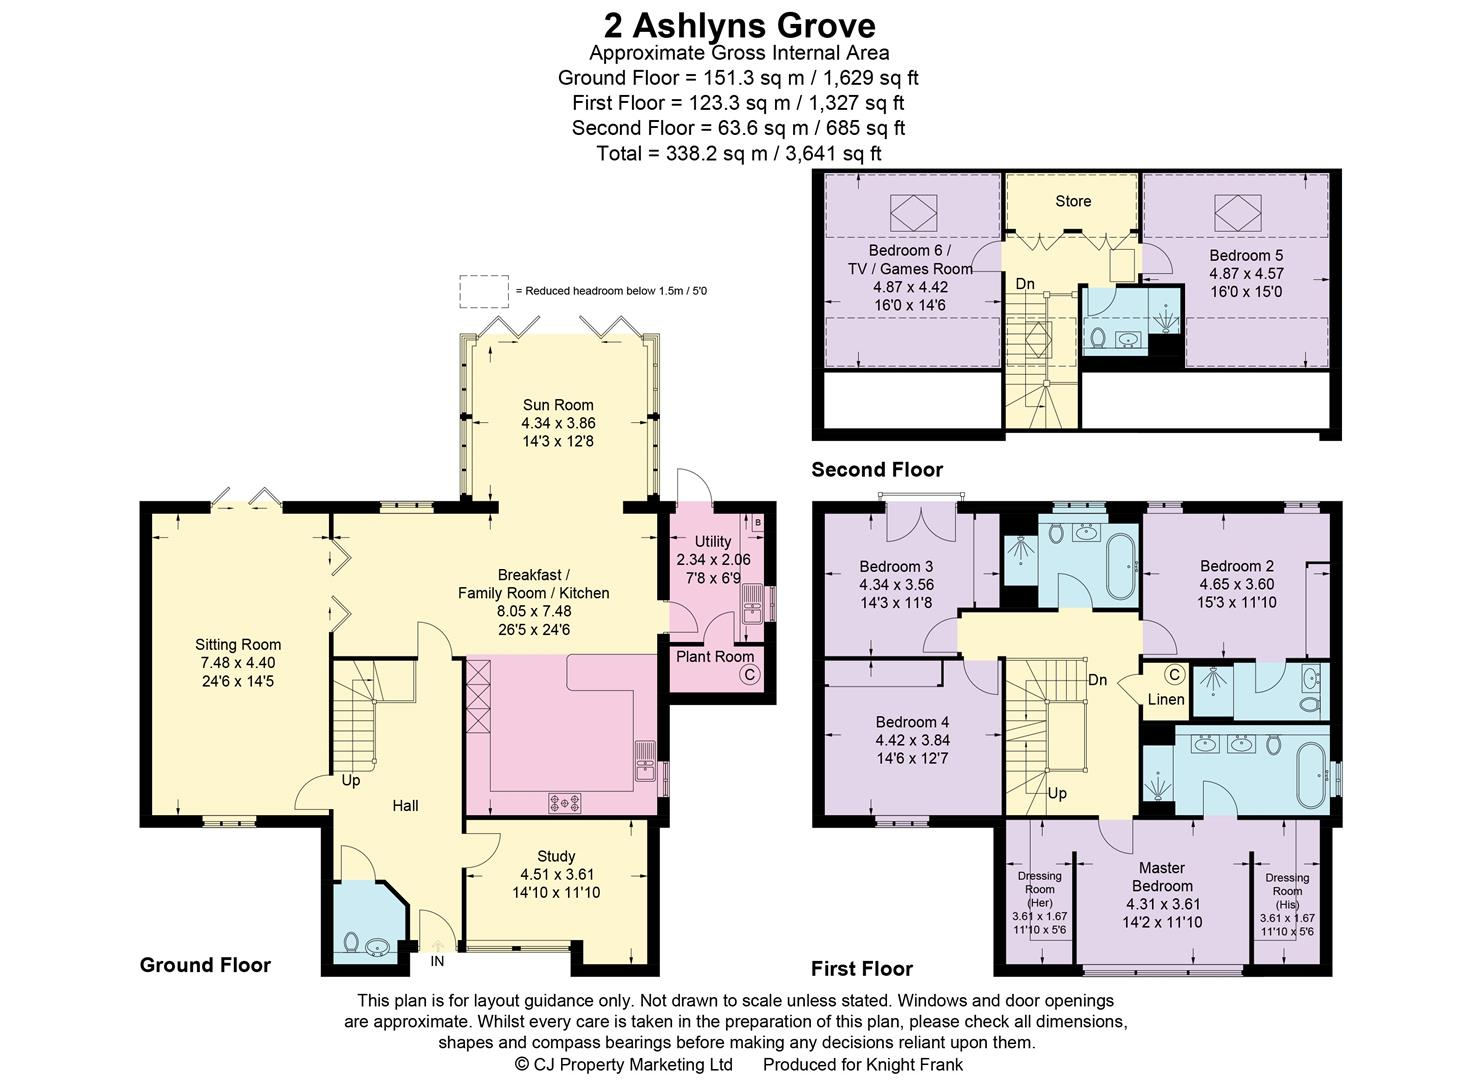 Floorplan - 2 Ashlyns Grove.jpg